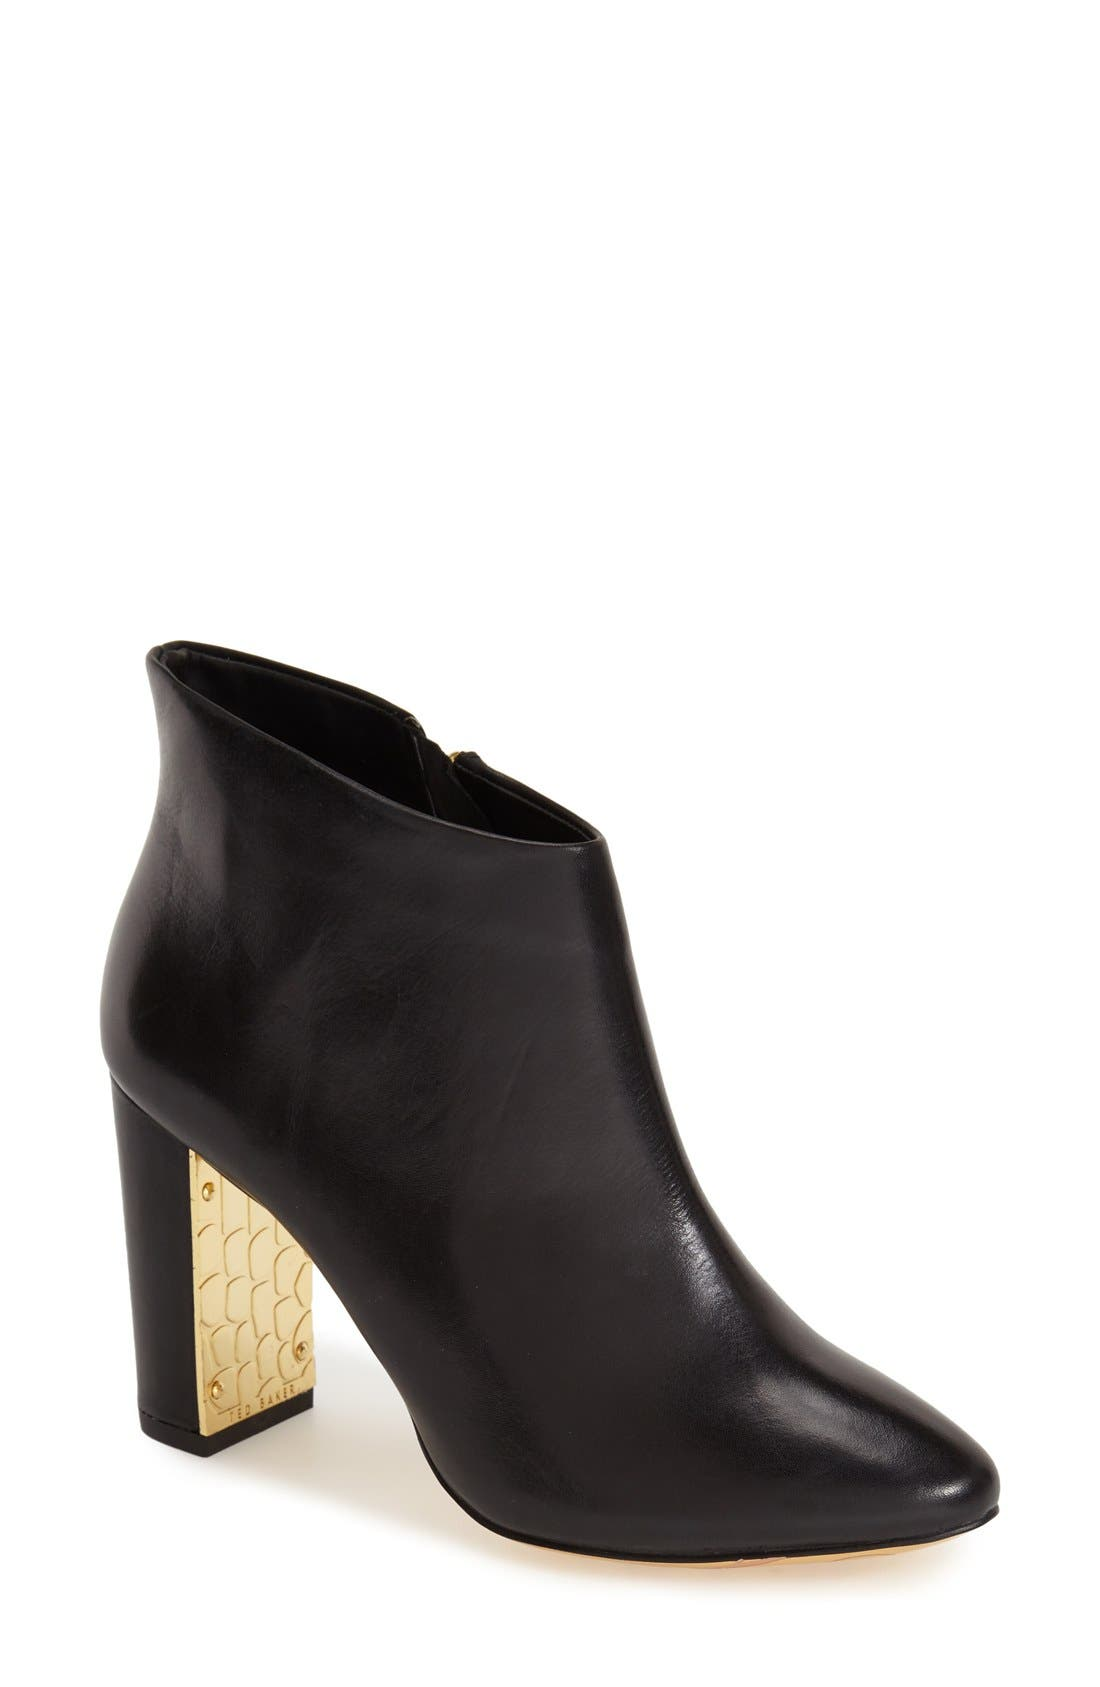 Alternate Image 1 Selected - Ted Baker London 'Lowrenna' Ankle Bootie (Women)